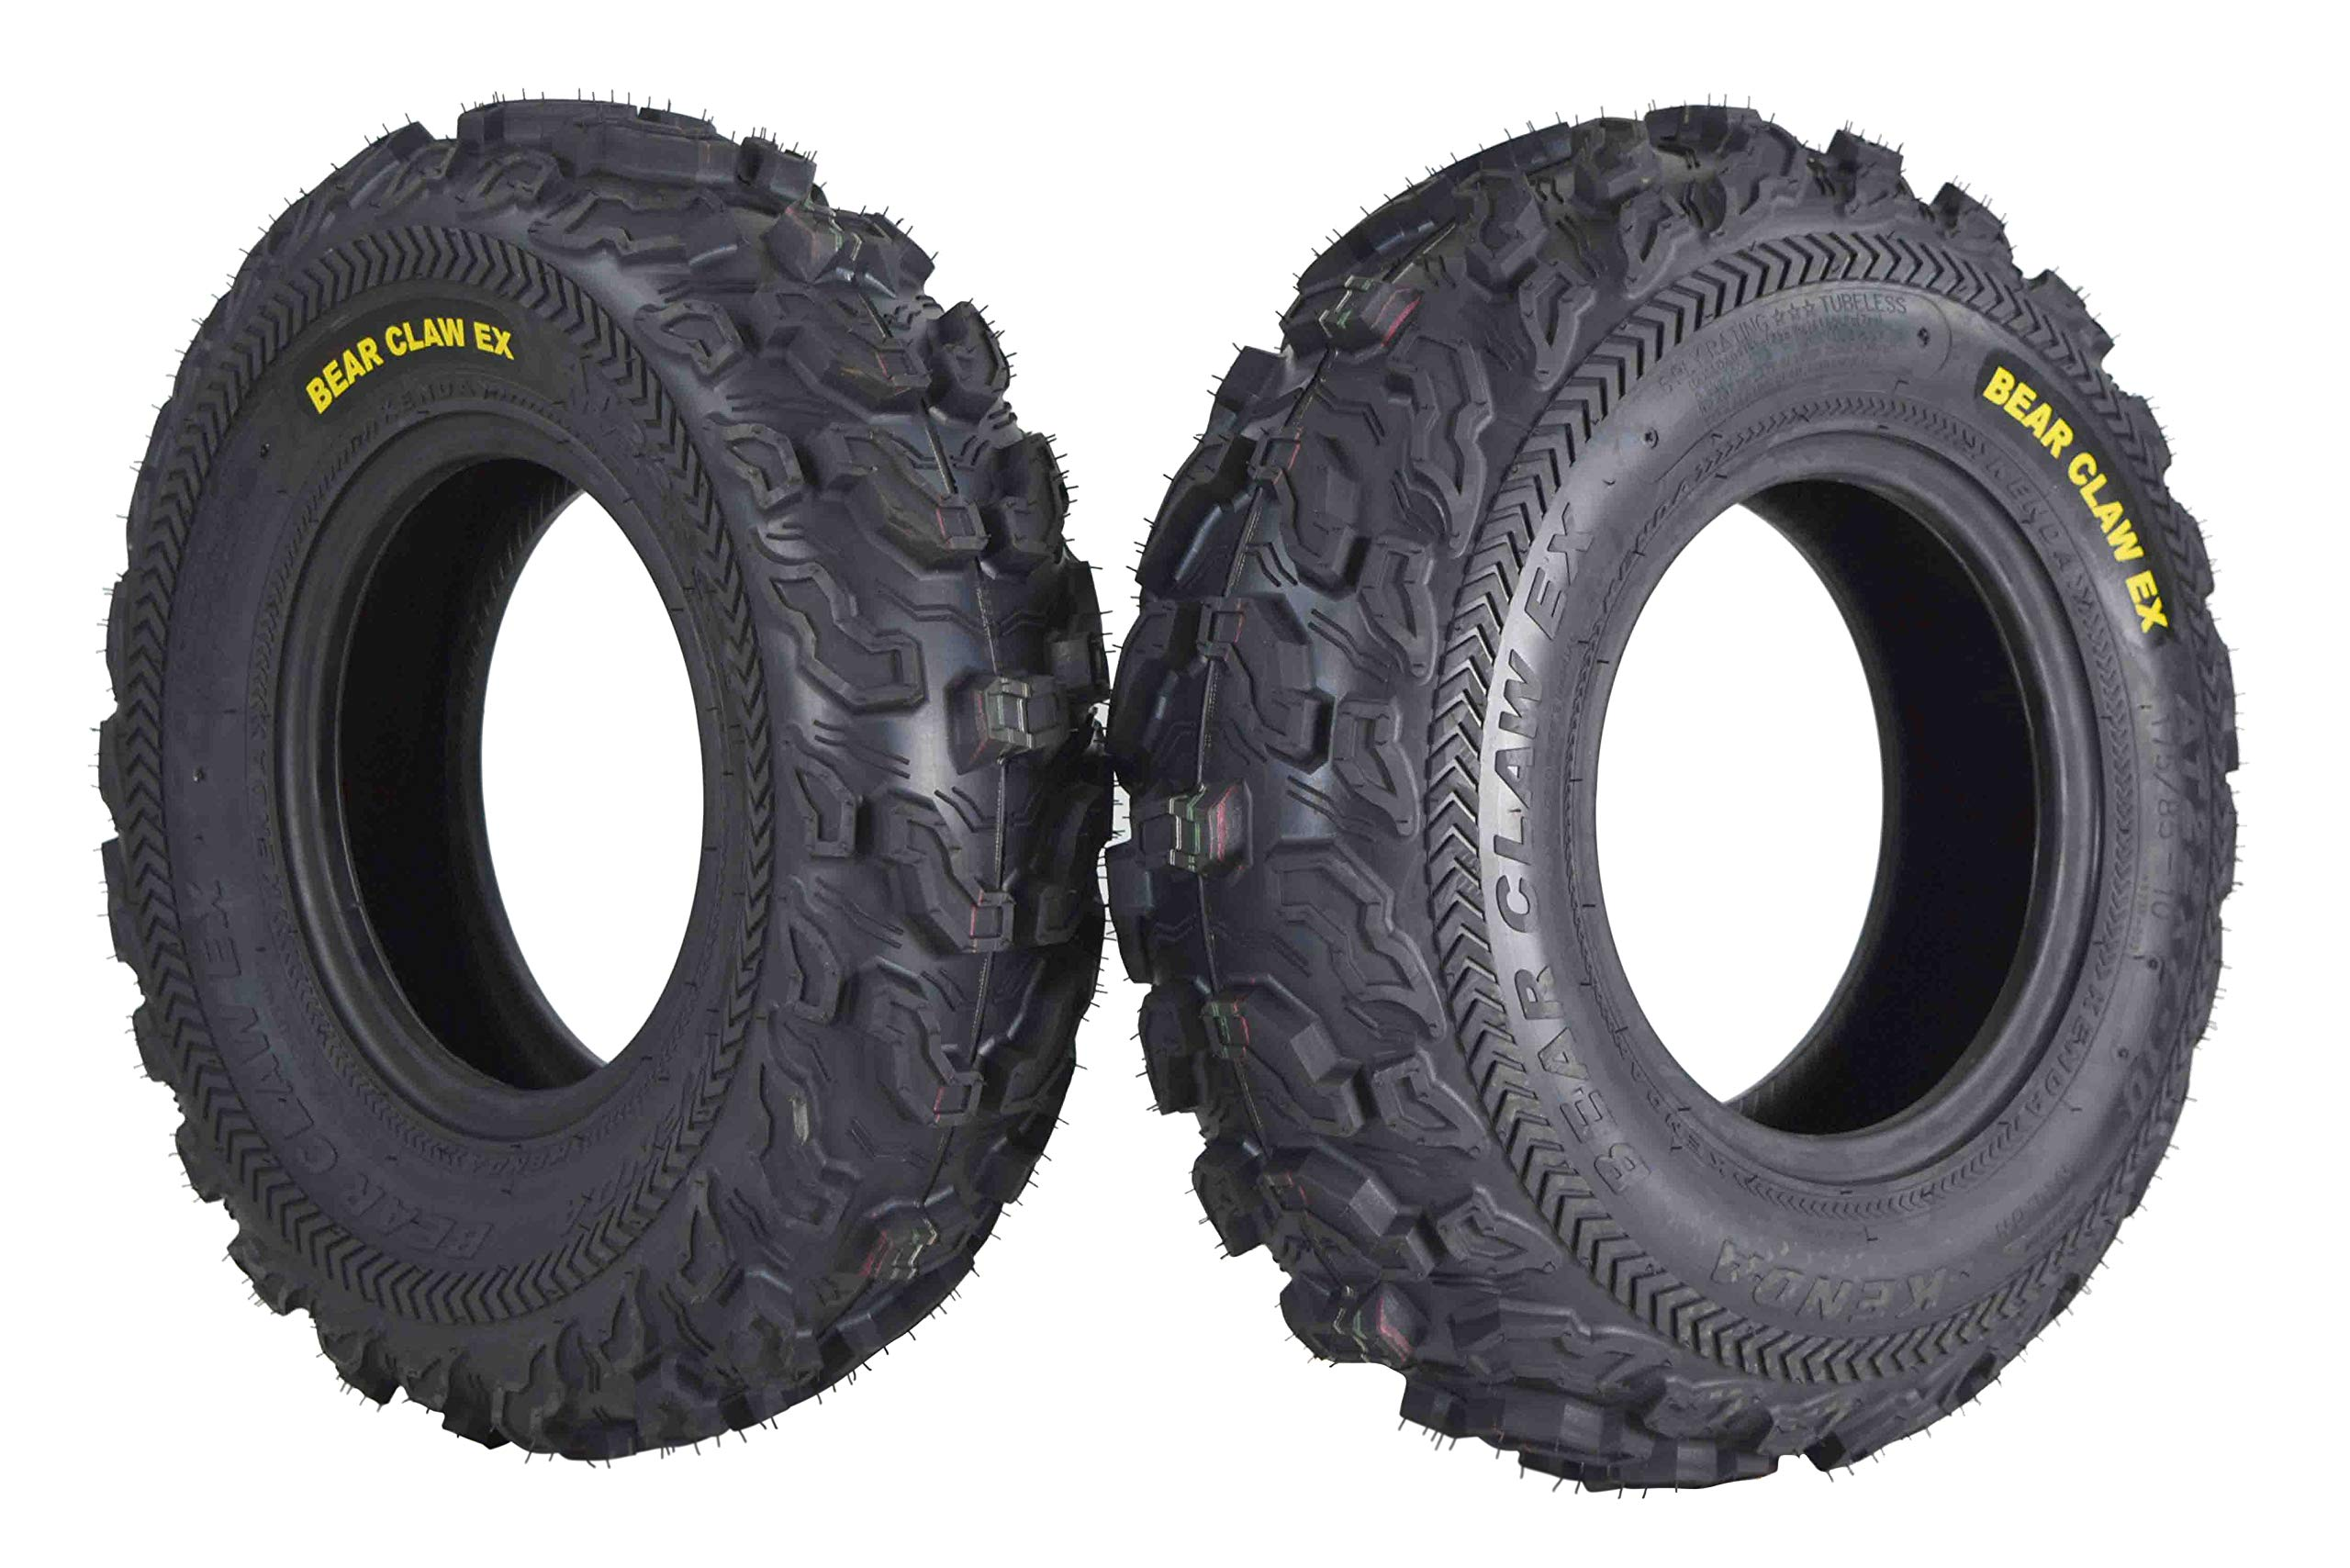 Kenda Bear Claw EX 22x7-10 Front ATV 6 PLY Tires Bearclaw 22x7x10-2 Pack by Kenda